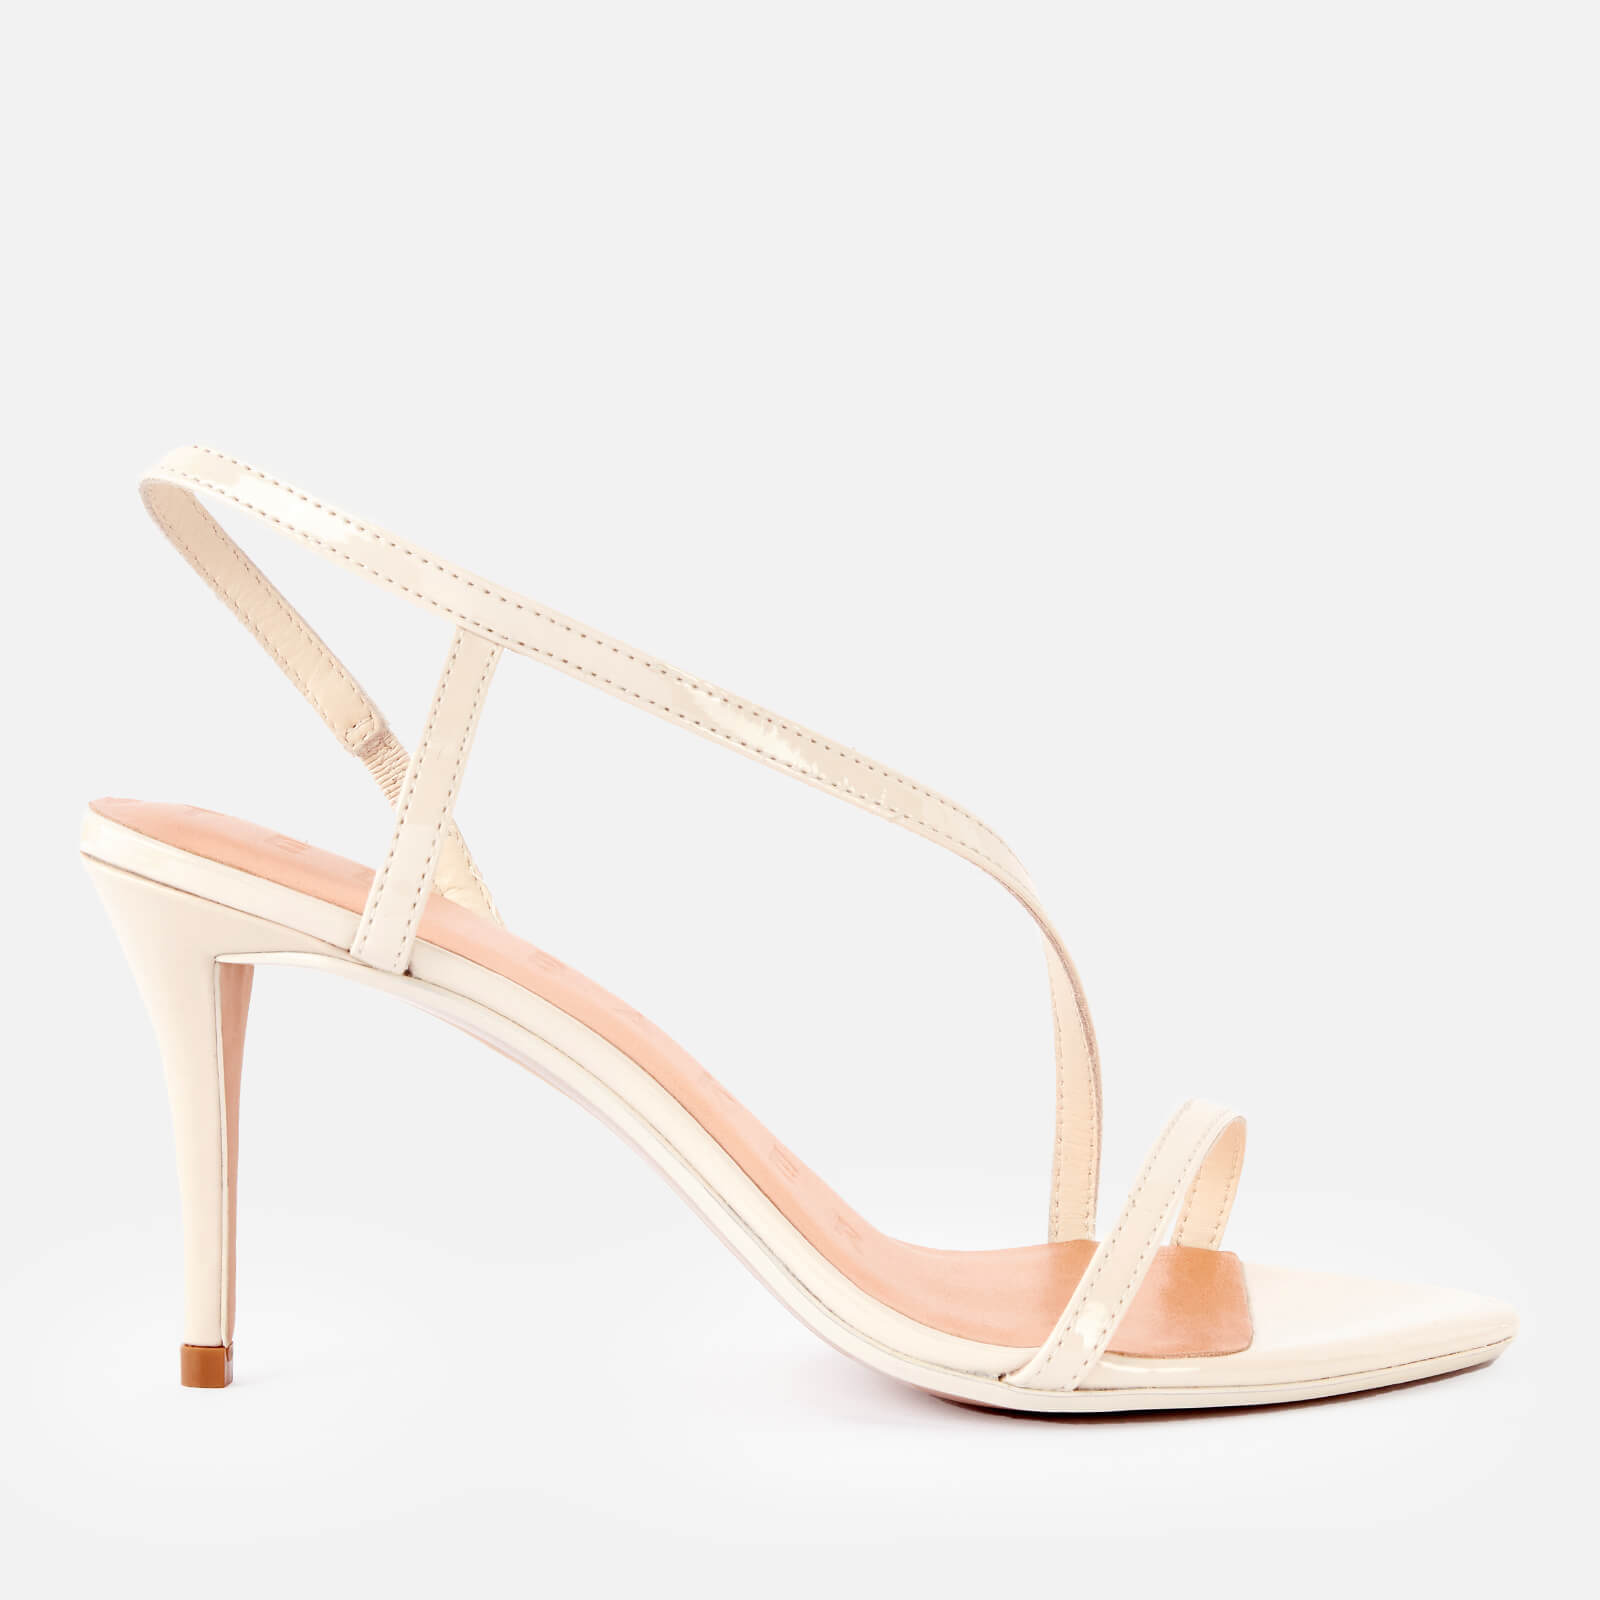 Ted Baker Women's Pippel Barely There Heeled Sandals - Nude - UK 3